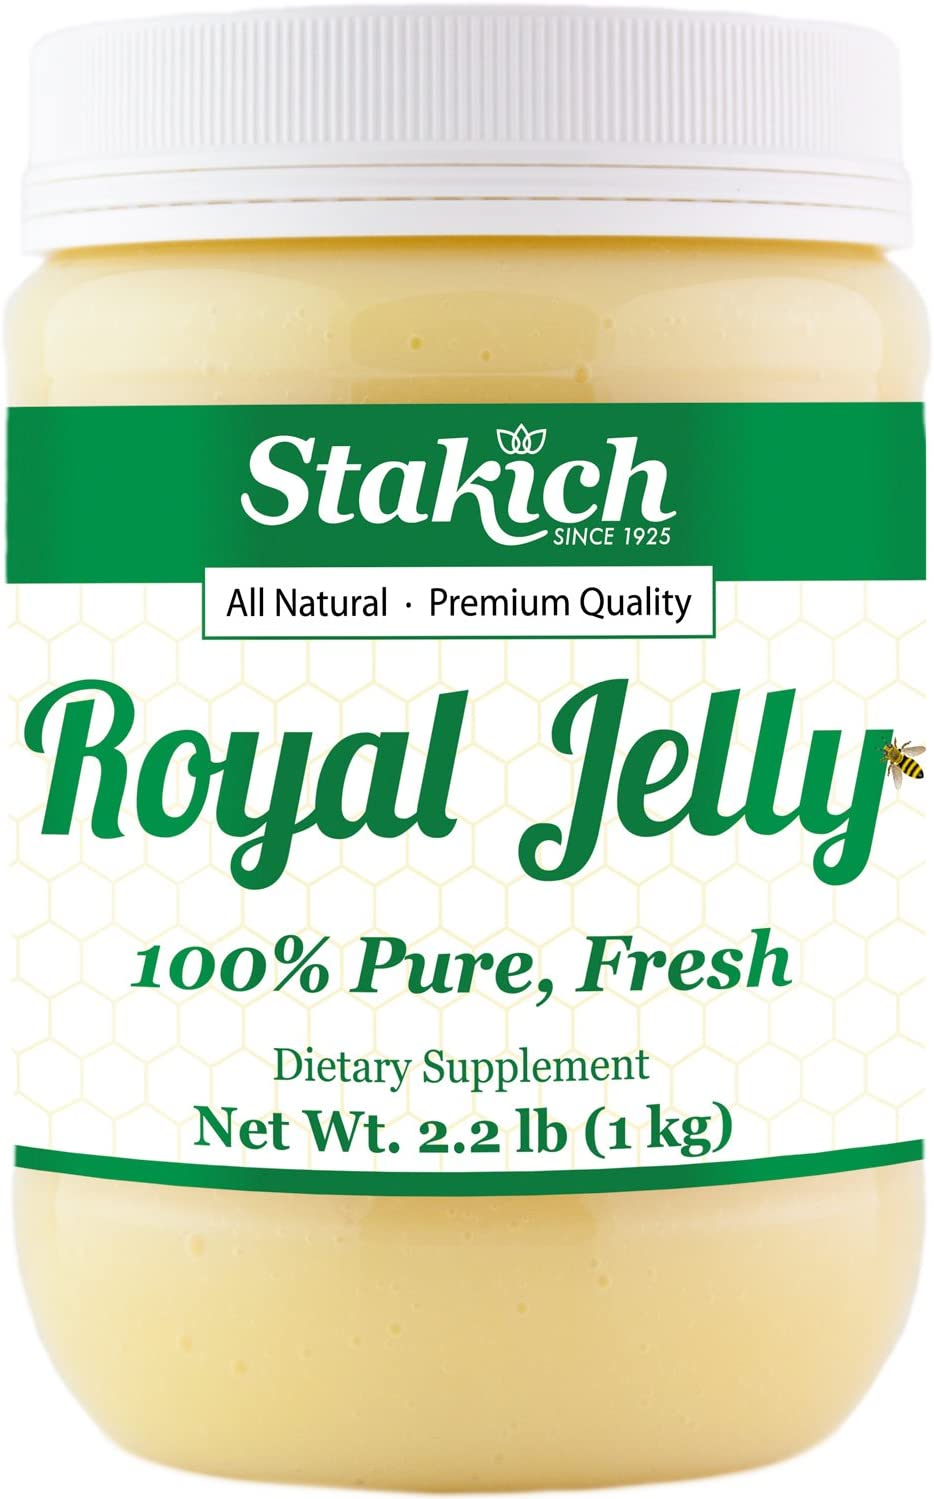 safety Stakich In a popularity Fresh Royal Jelly - Pure All No Fla Additives Natural